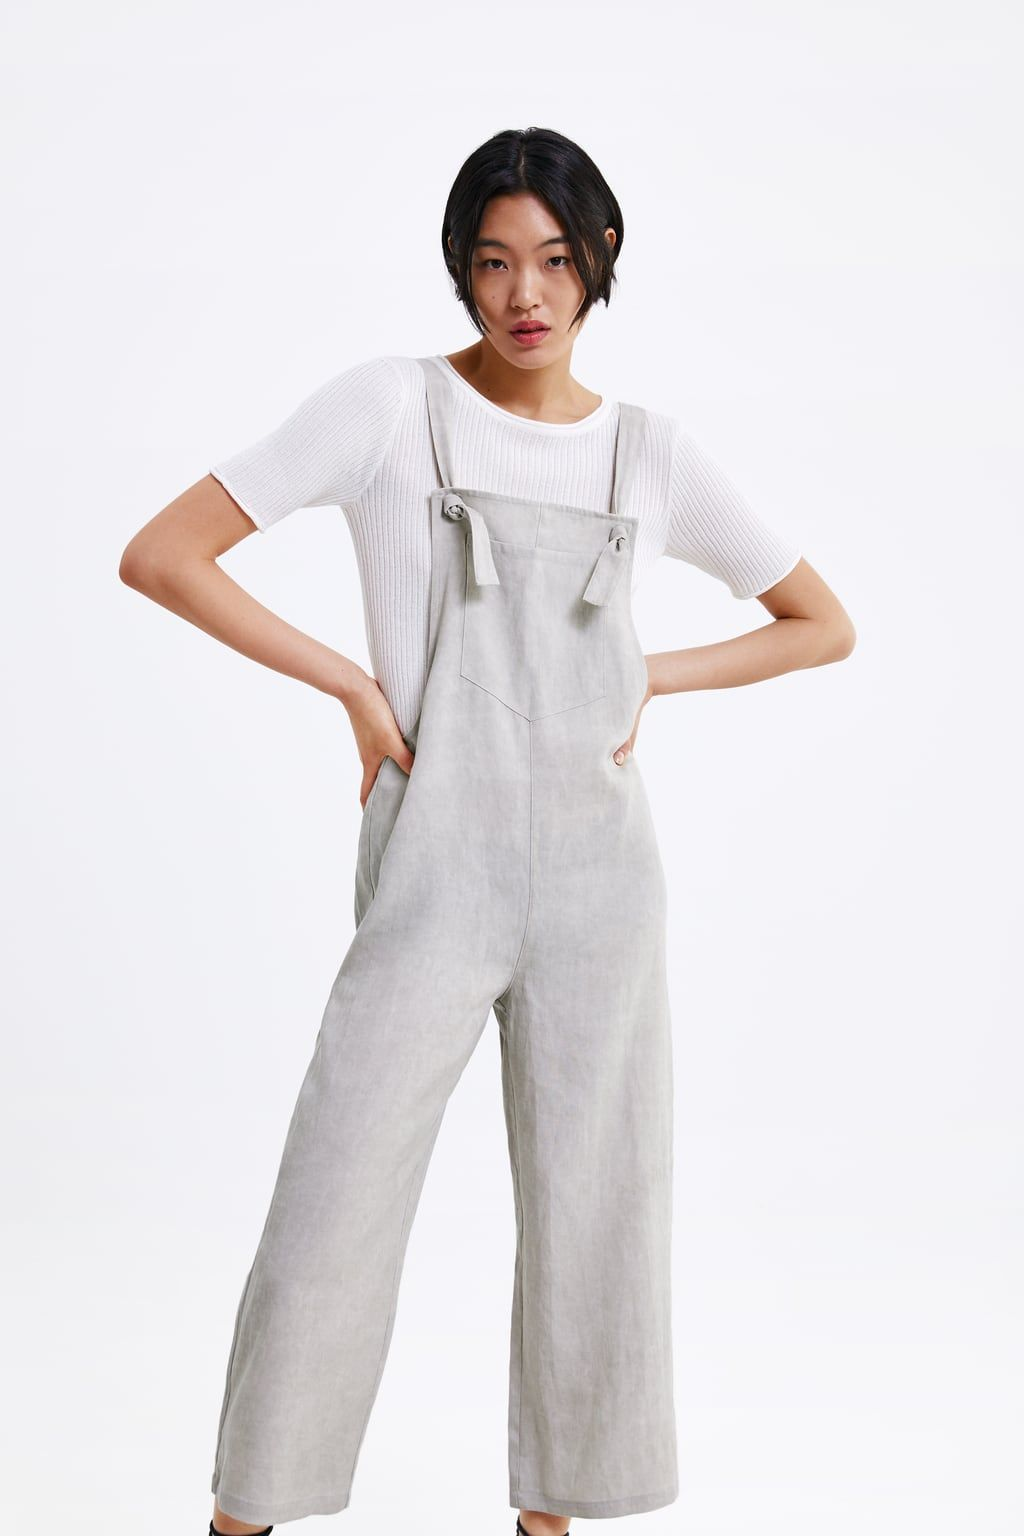 da86fca1a4 Wide-leg jumpsuit with pocket in 2019 | Zara | Jumpsuit, Wide leg ...